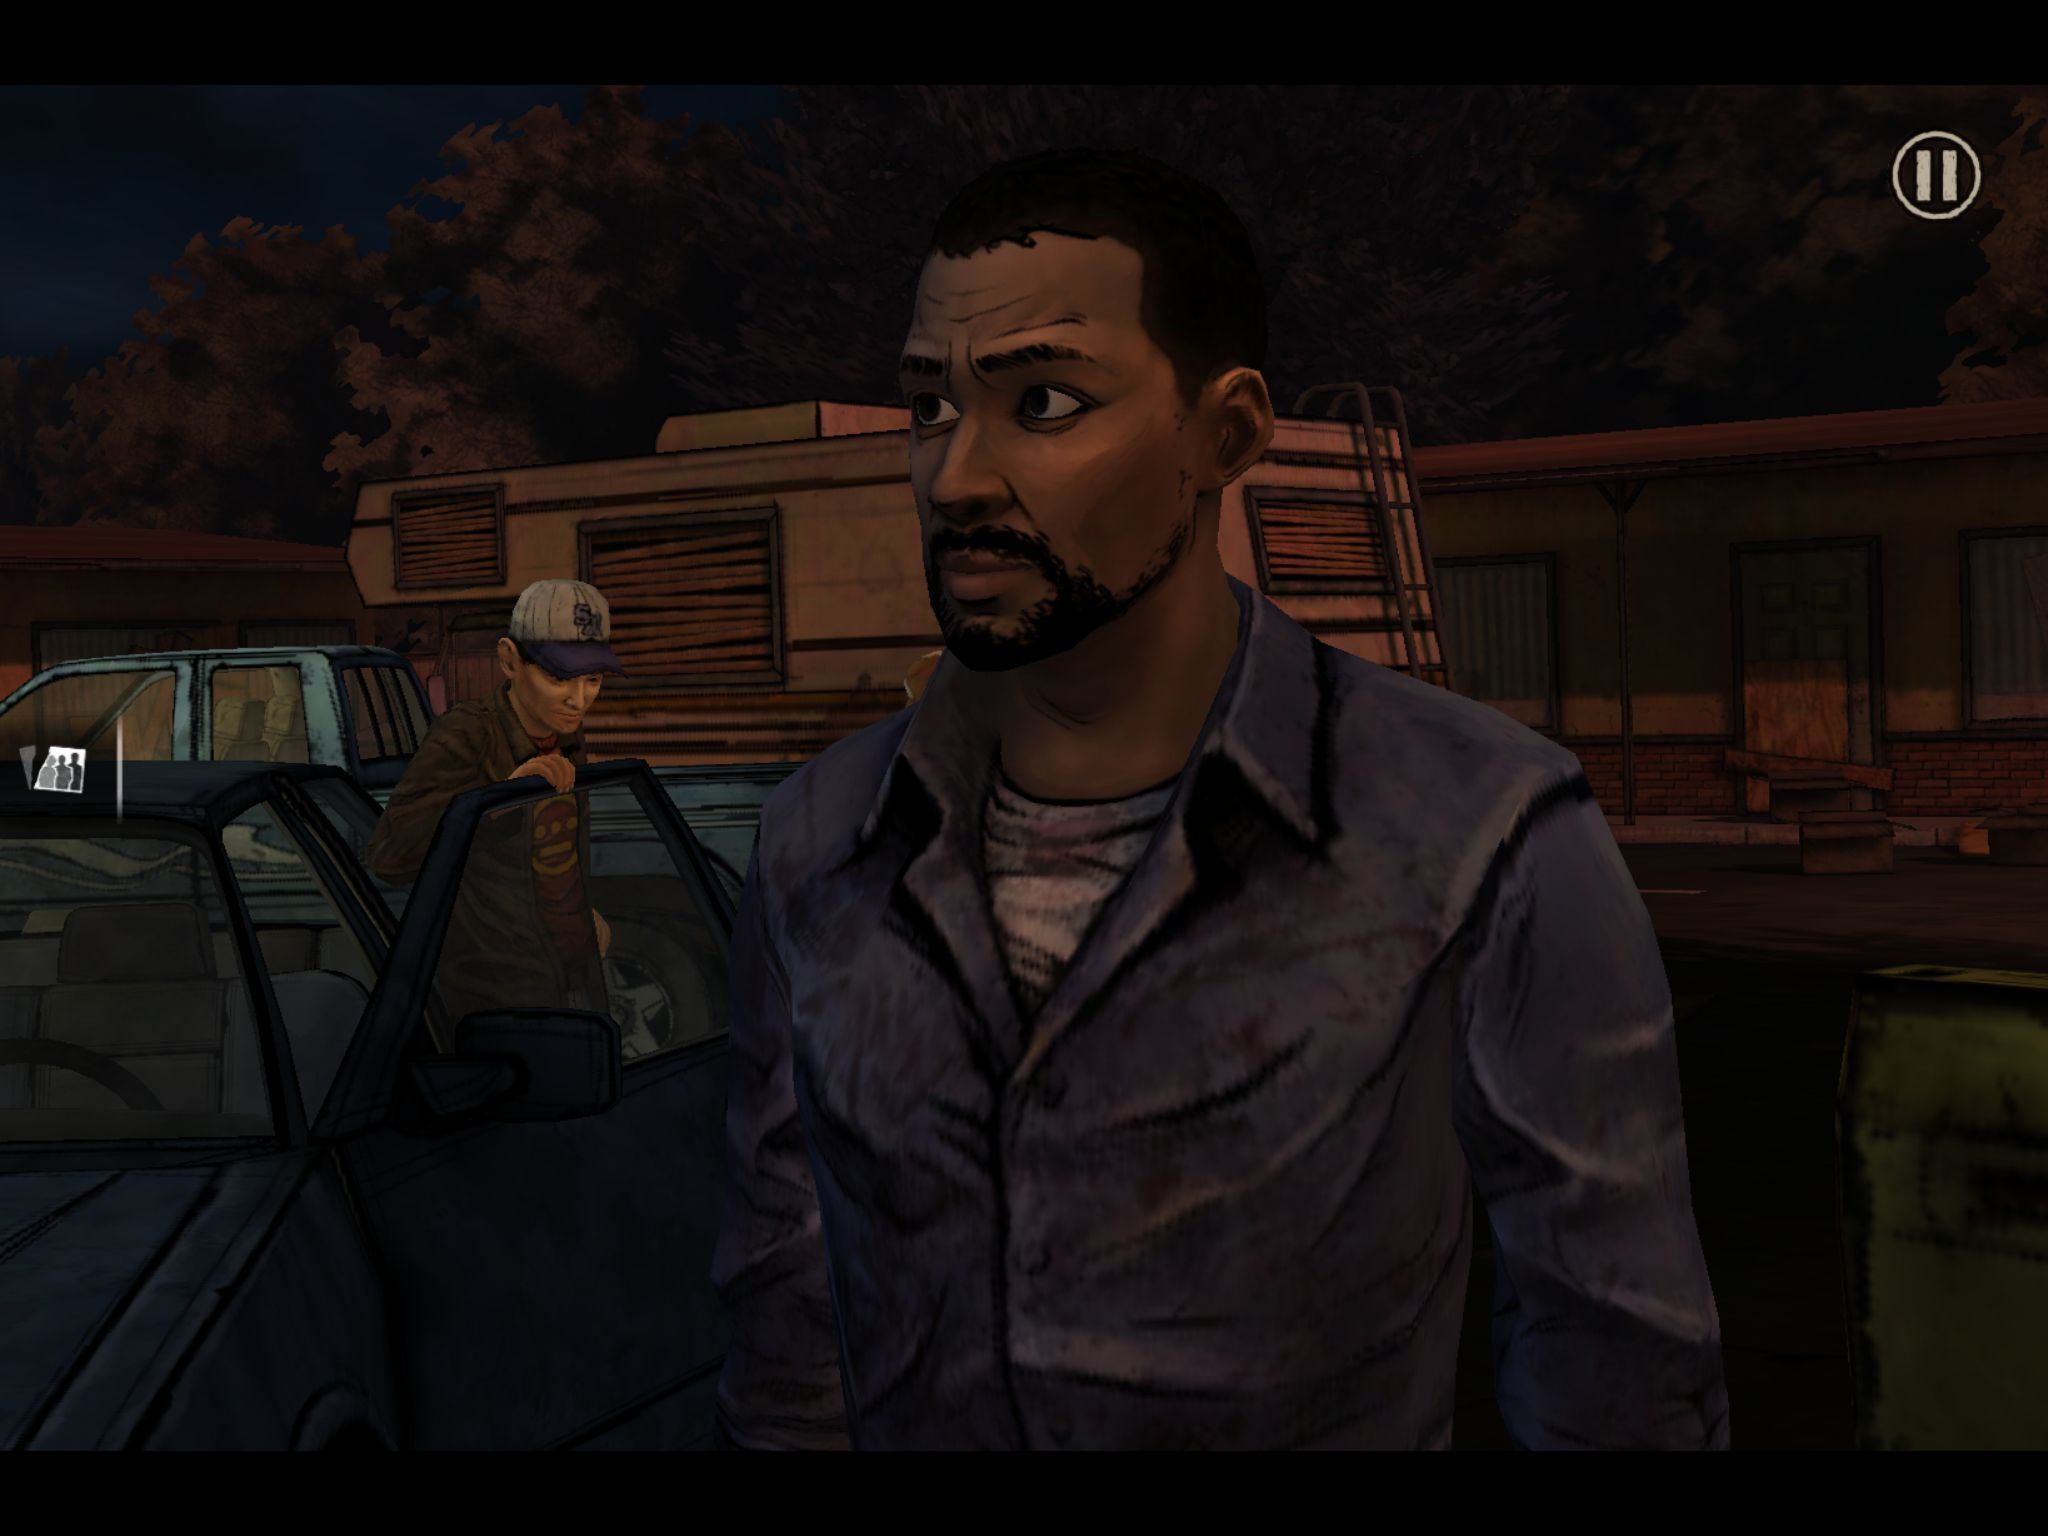 Season finale of The Walking Dead: The Game lurching onto iOS on November 21st